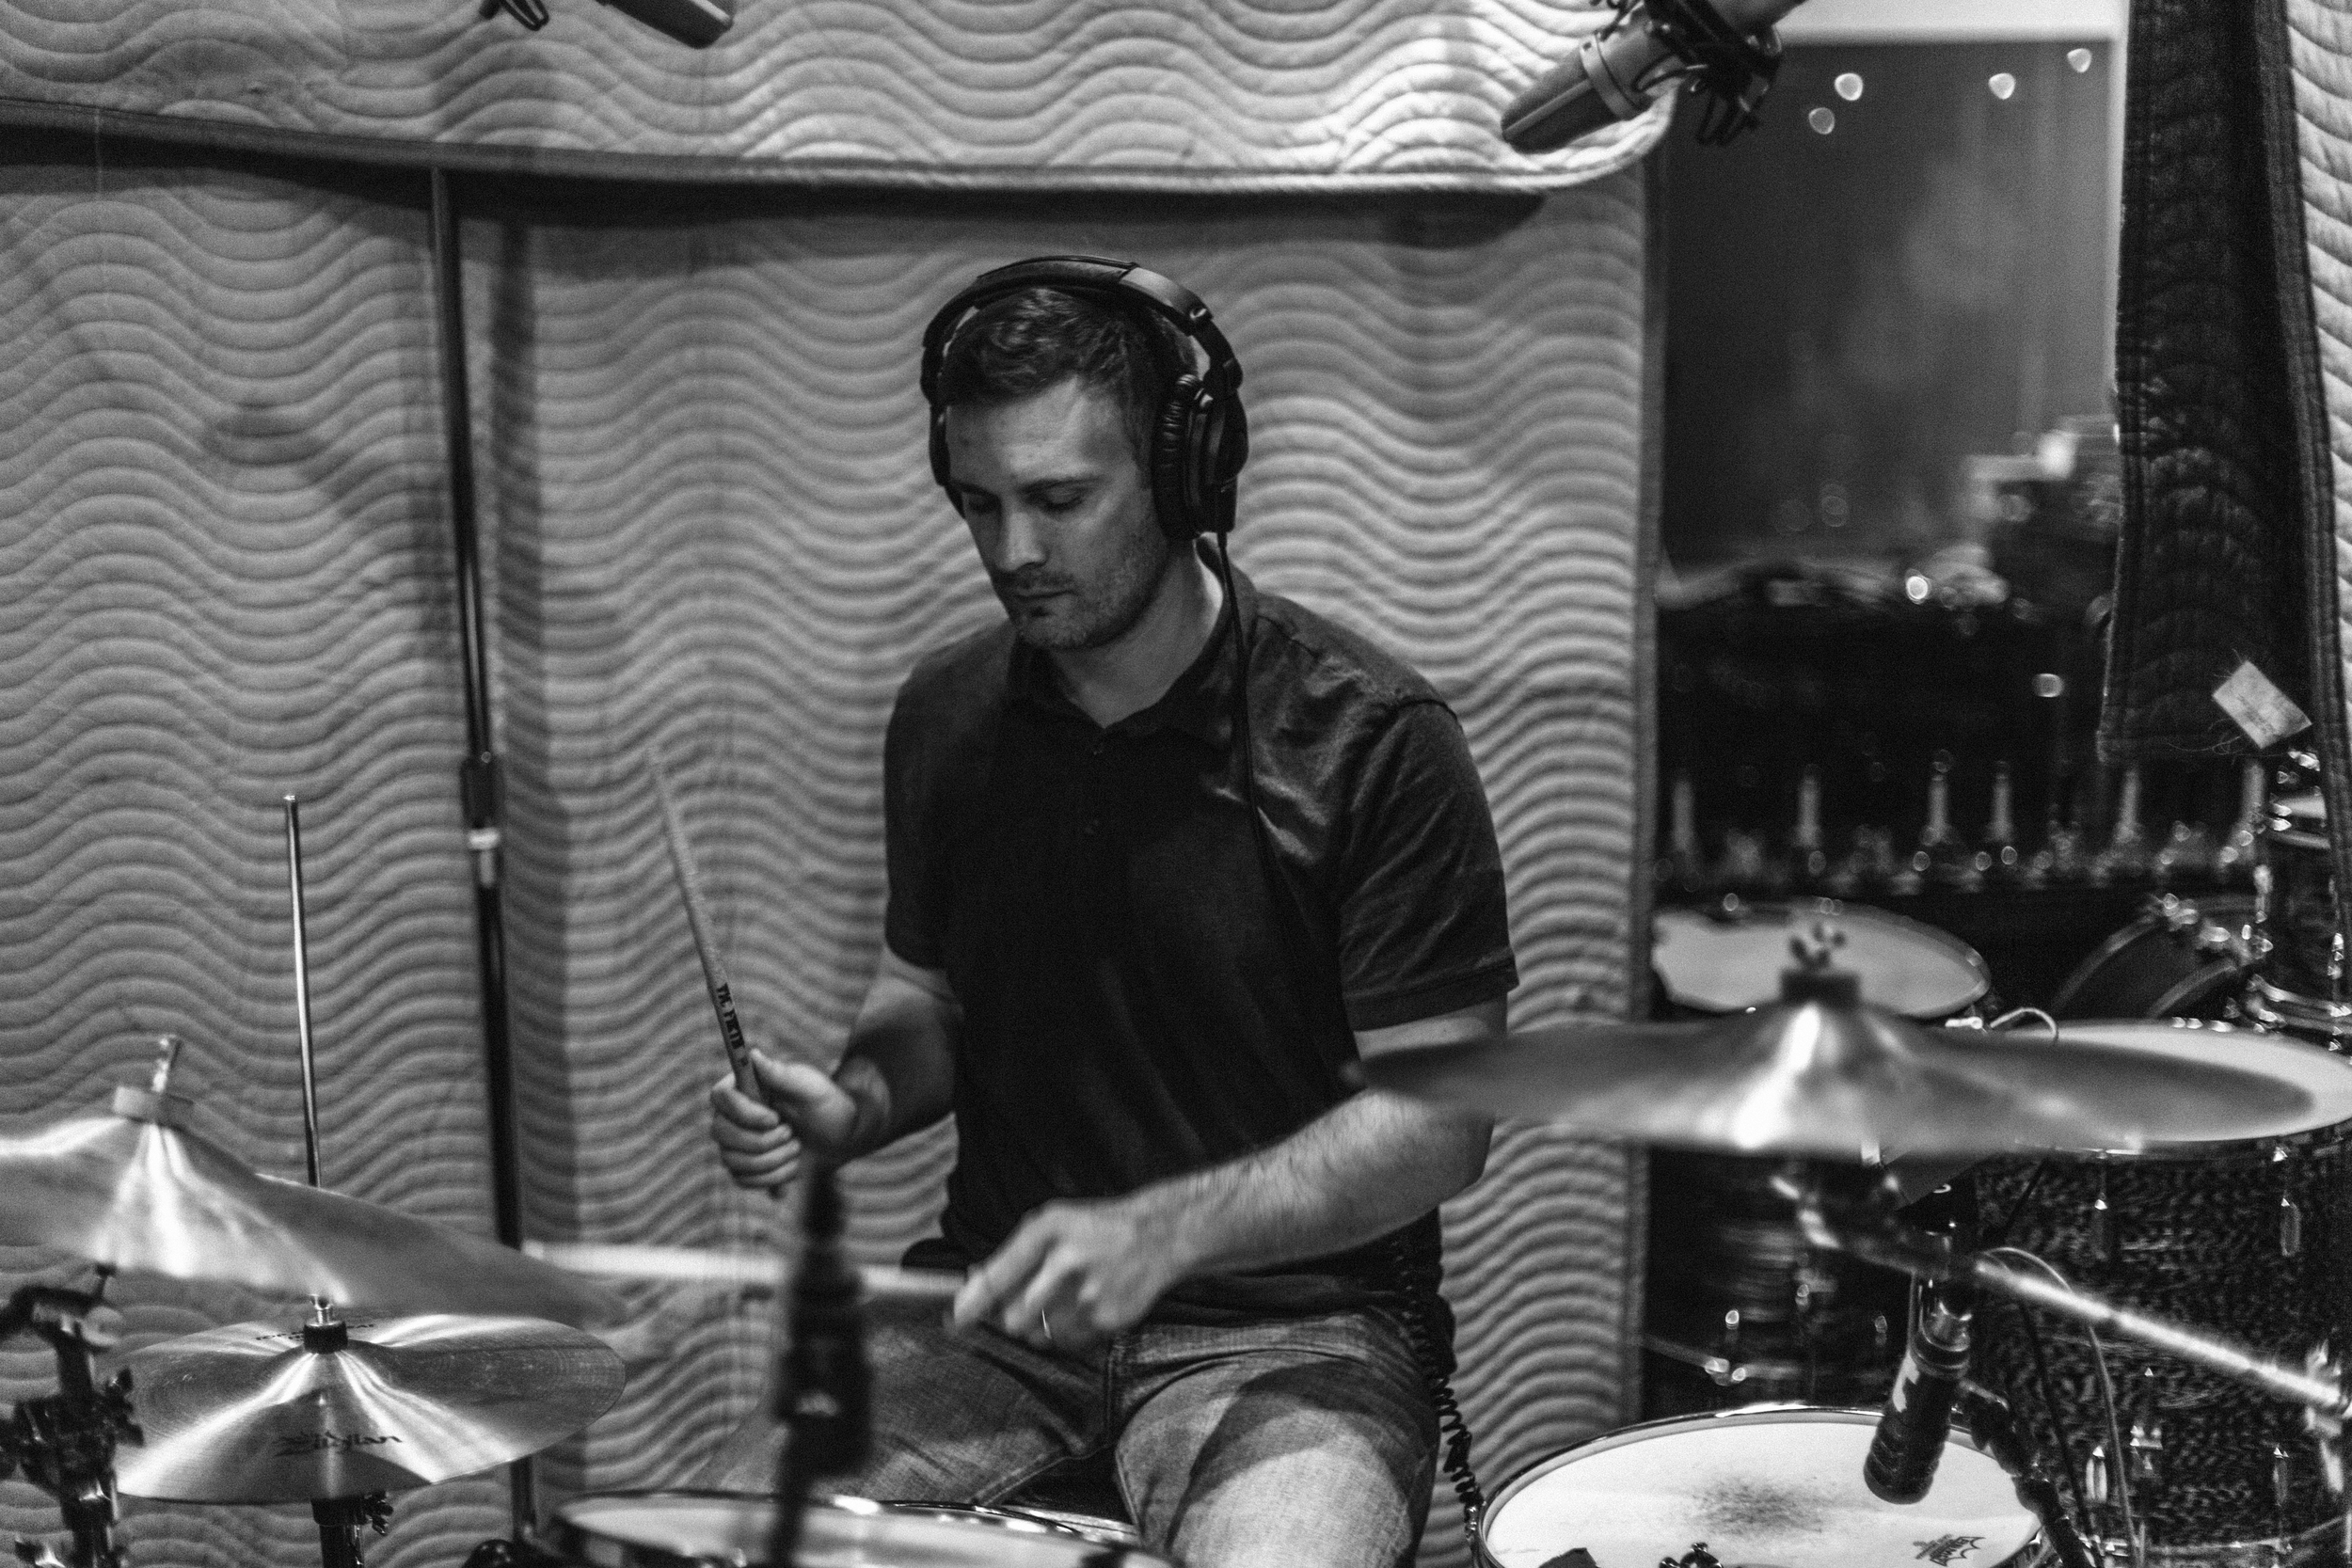 AARON ANDERSEN | DRUMs  We're very lucky to have Aaron, too. He drums for Fictionist, Utah's most talented young rock band. Aaron's jazz-rock style complements the piano-led songs on the album excellently.